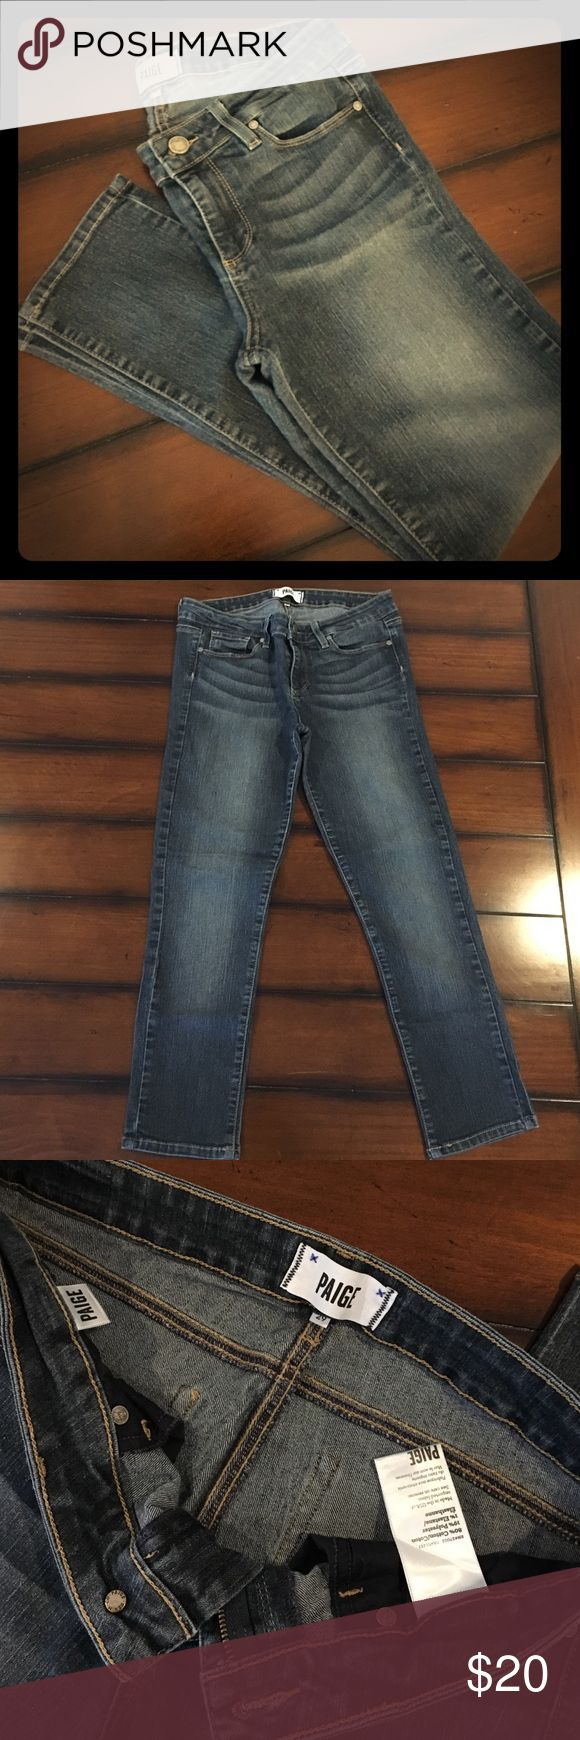 """Paige Premium Denim Skinny Ankle Jeans size 29 Medium wash, Paige Premium Denim ankle style jeans size 29, with a 24"""" inseam & 8"""" rise. I wore these a lot the first 4-6 weeks after having my daughter. They are still in very GUC, No rips, stains or tears. Lots of stretch and very flattering! Paige Jeans Jeans Ankle & Cropped"""